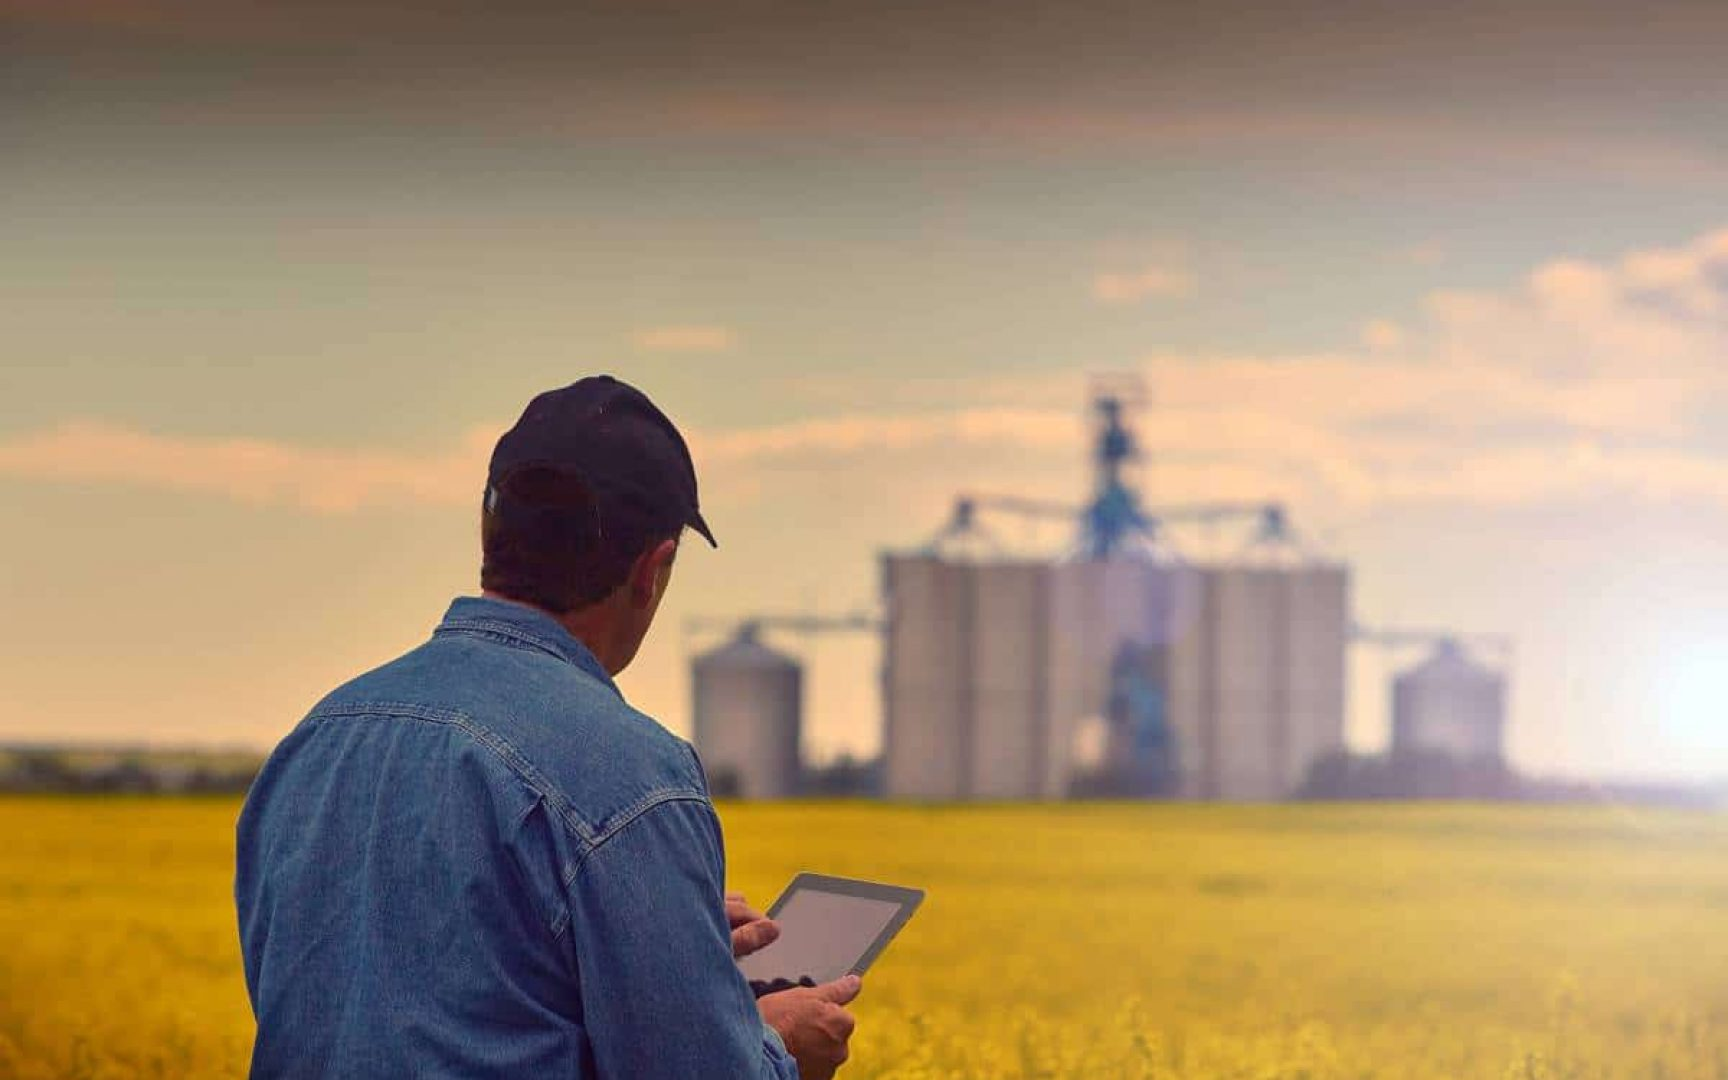 Farmer in wheat field uses a tablet device.